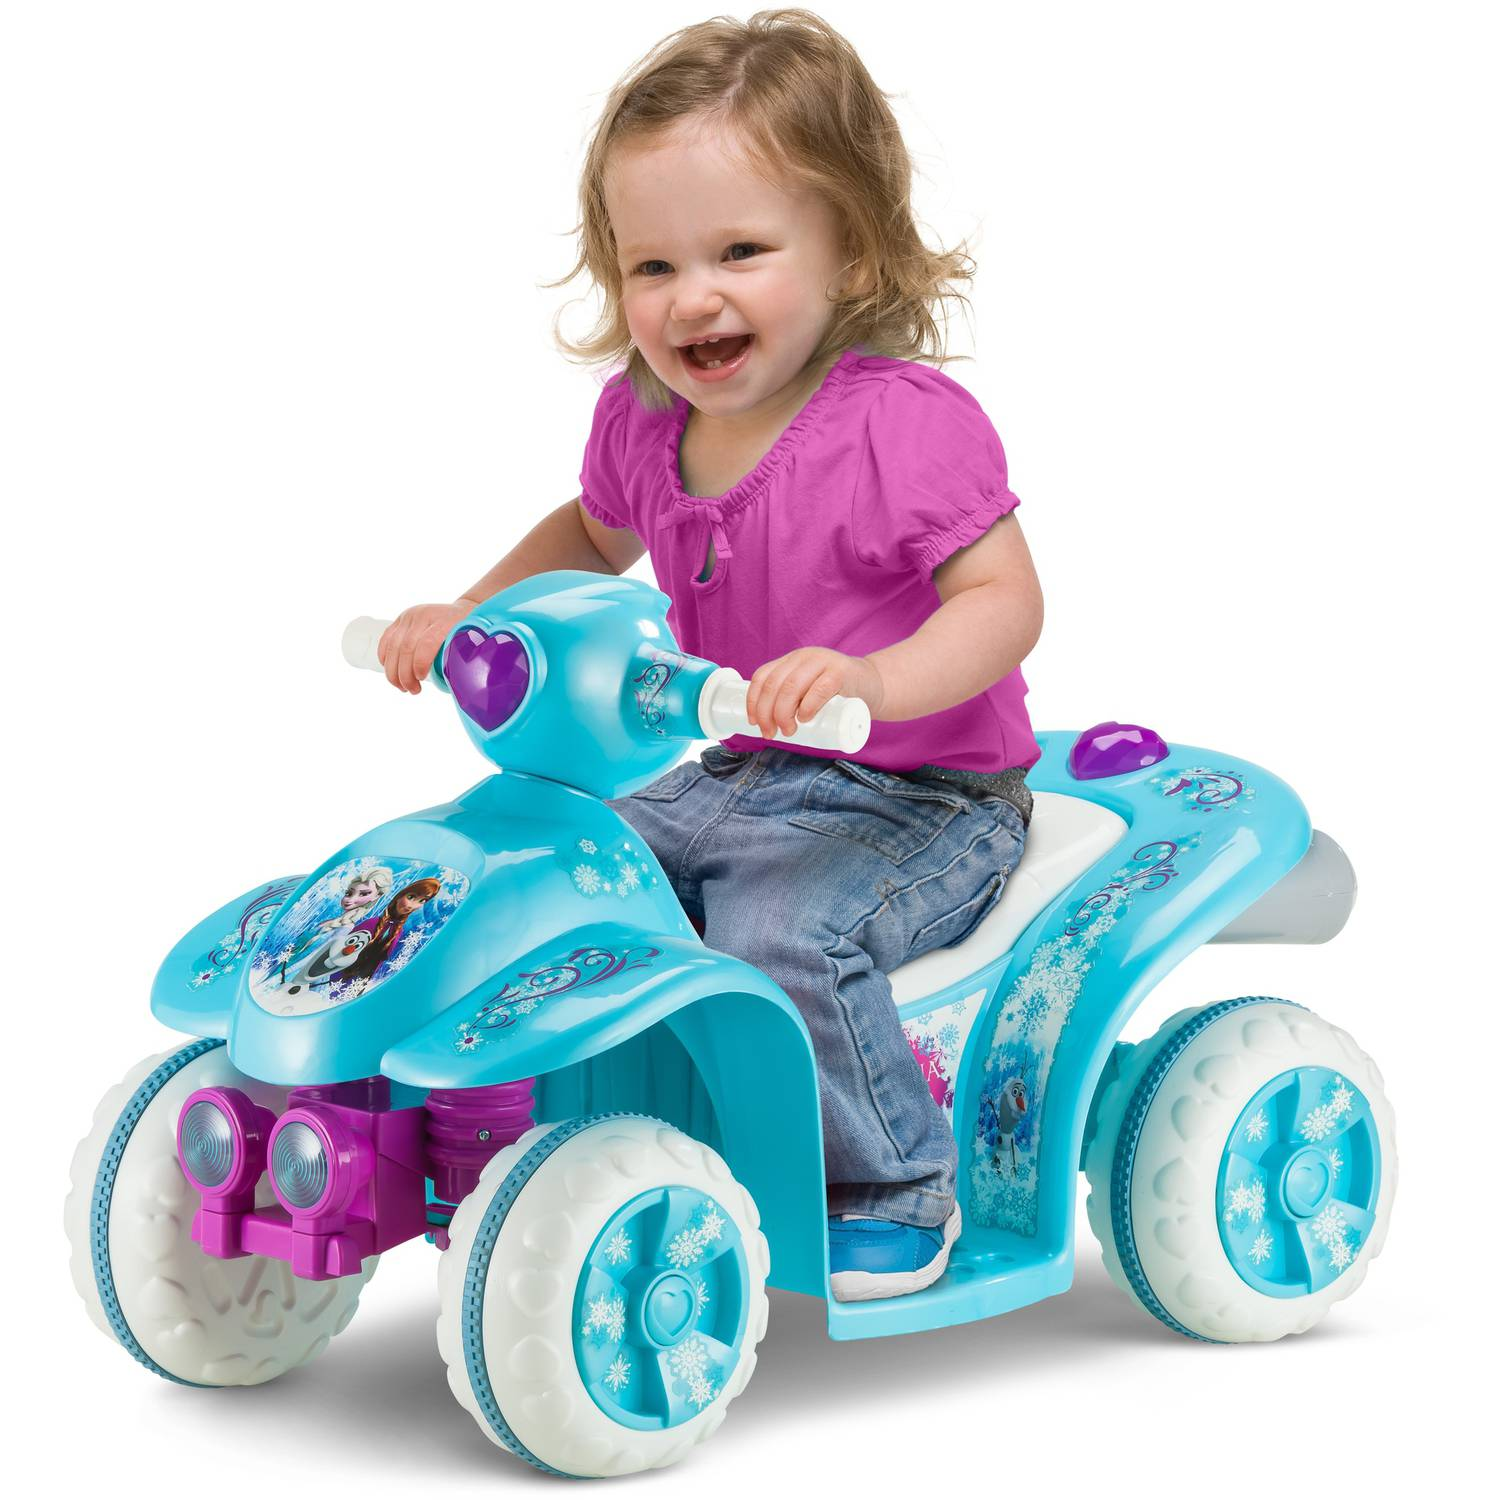 Disney Frozen Toddler Quad Blue Walmart